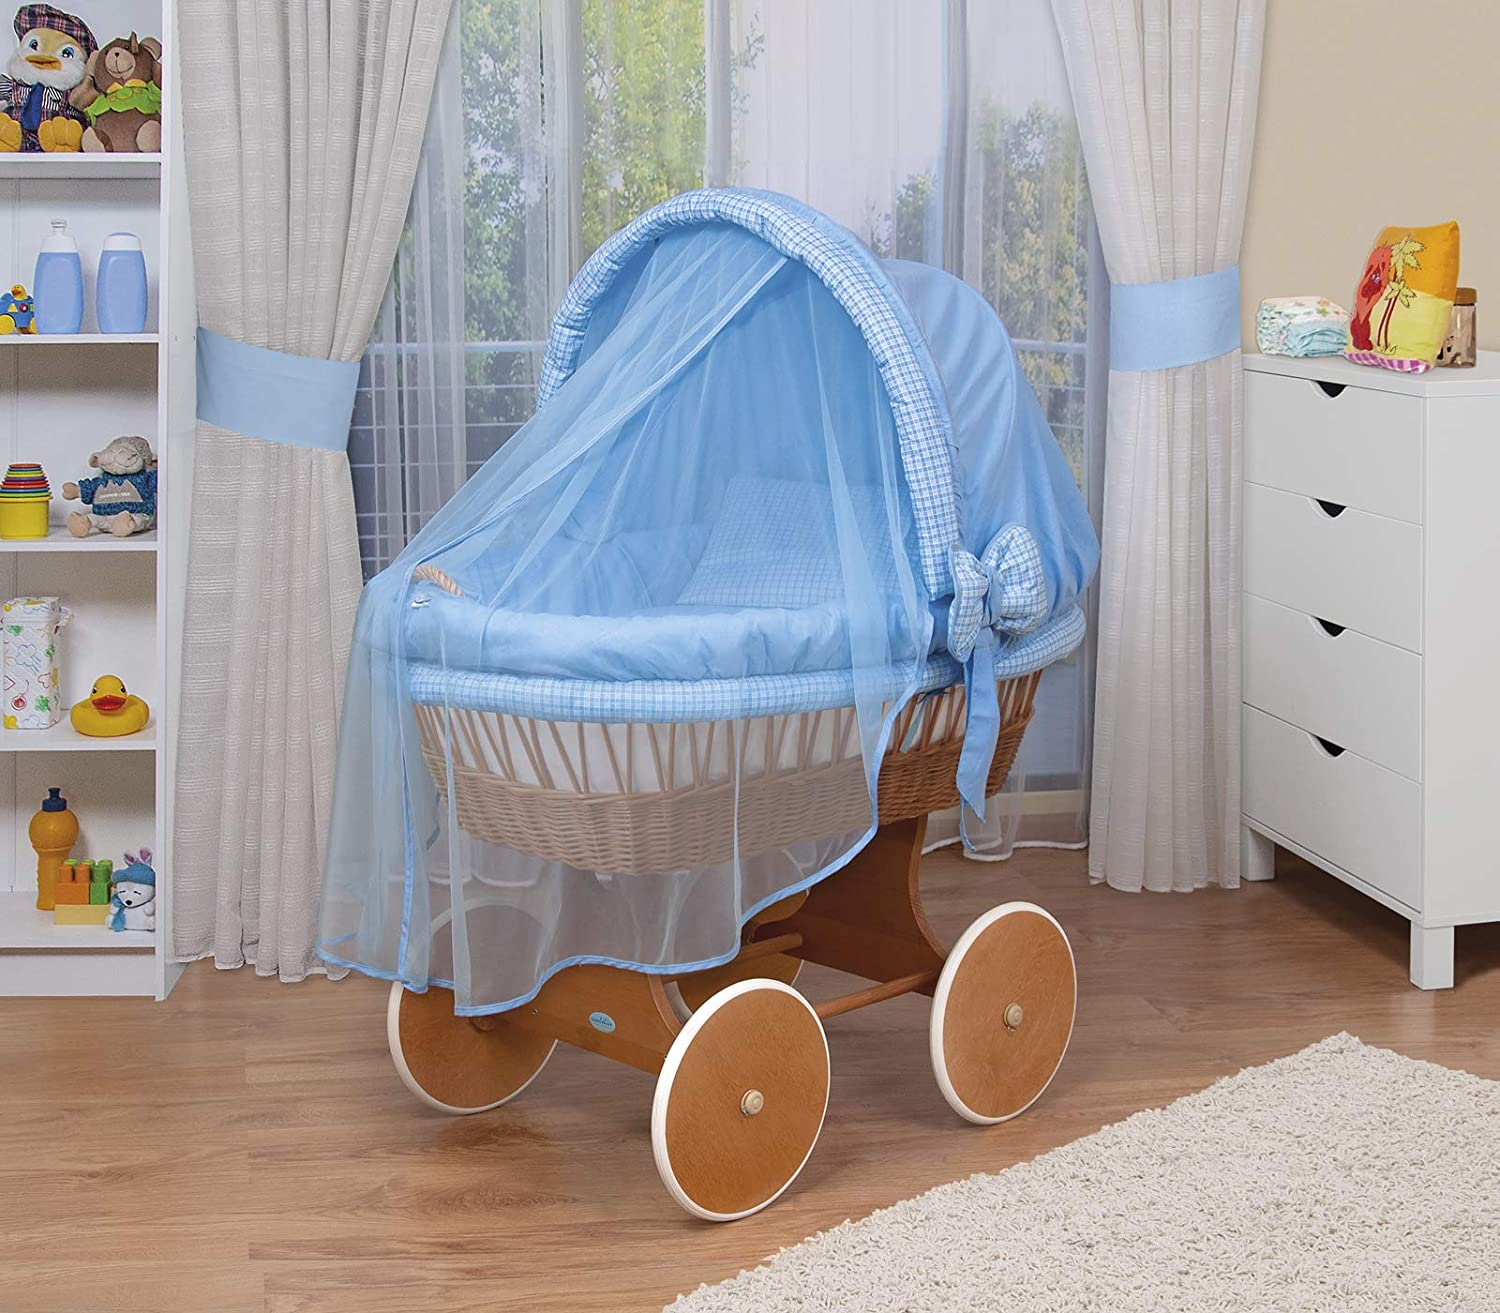 WALDIN Baby wicker cradle,Moses basket,44 models available,white painted stand//wheels,textile colour blue//squared